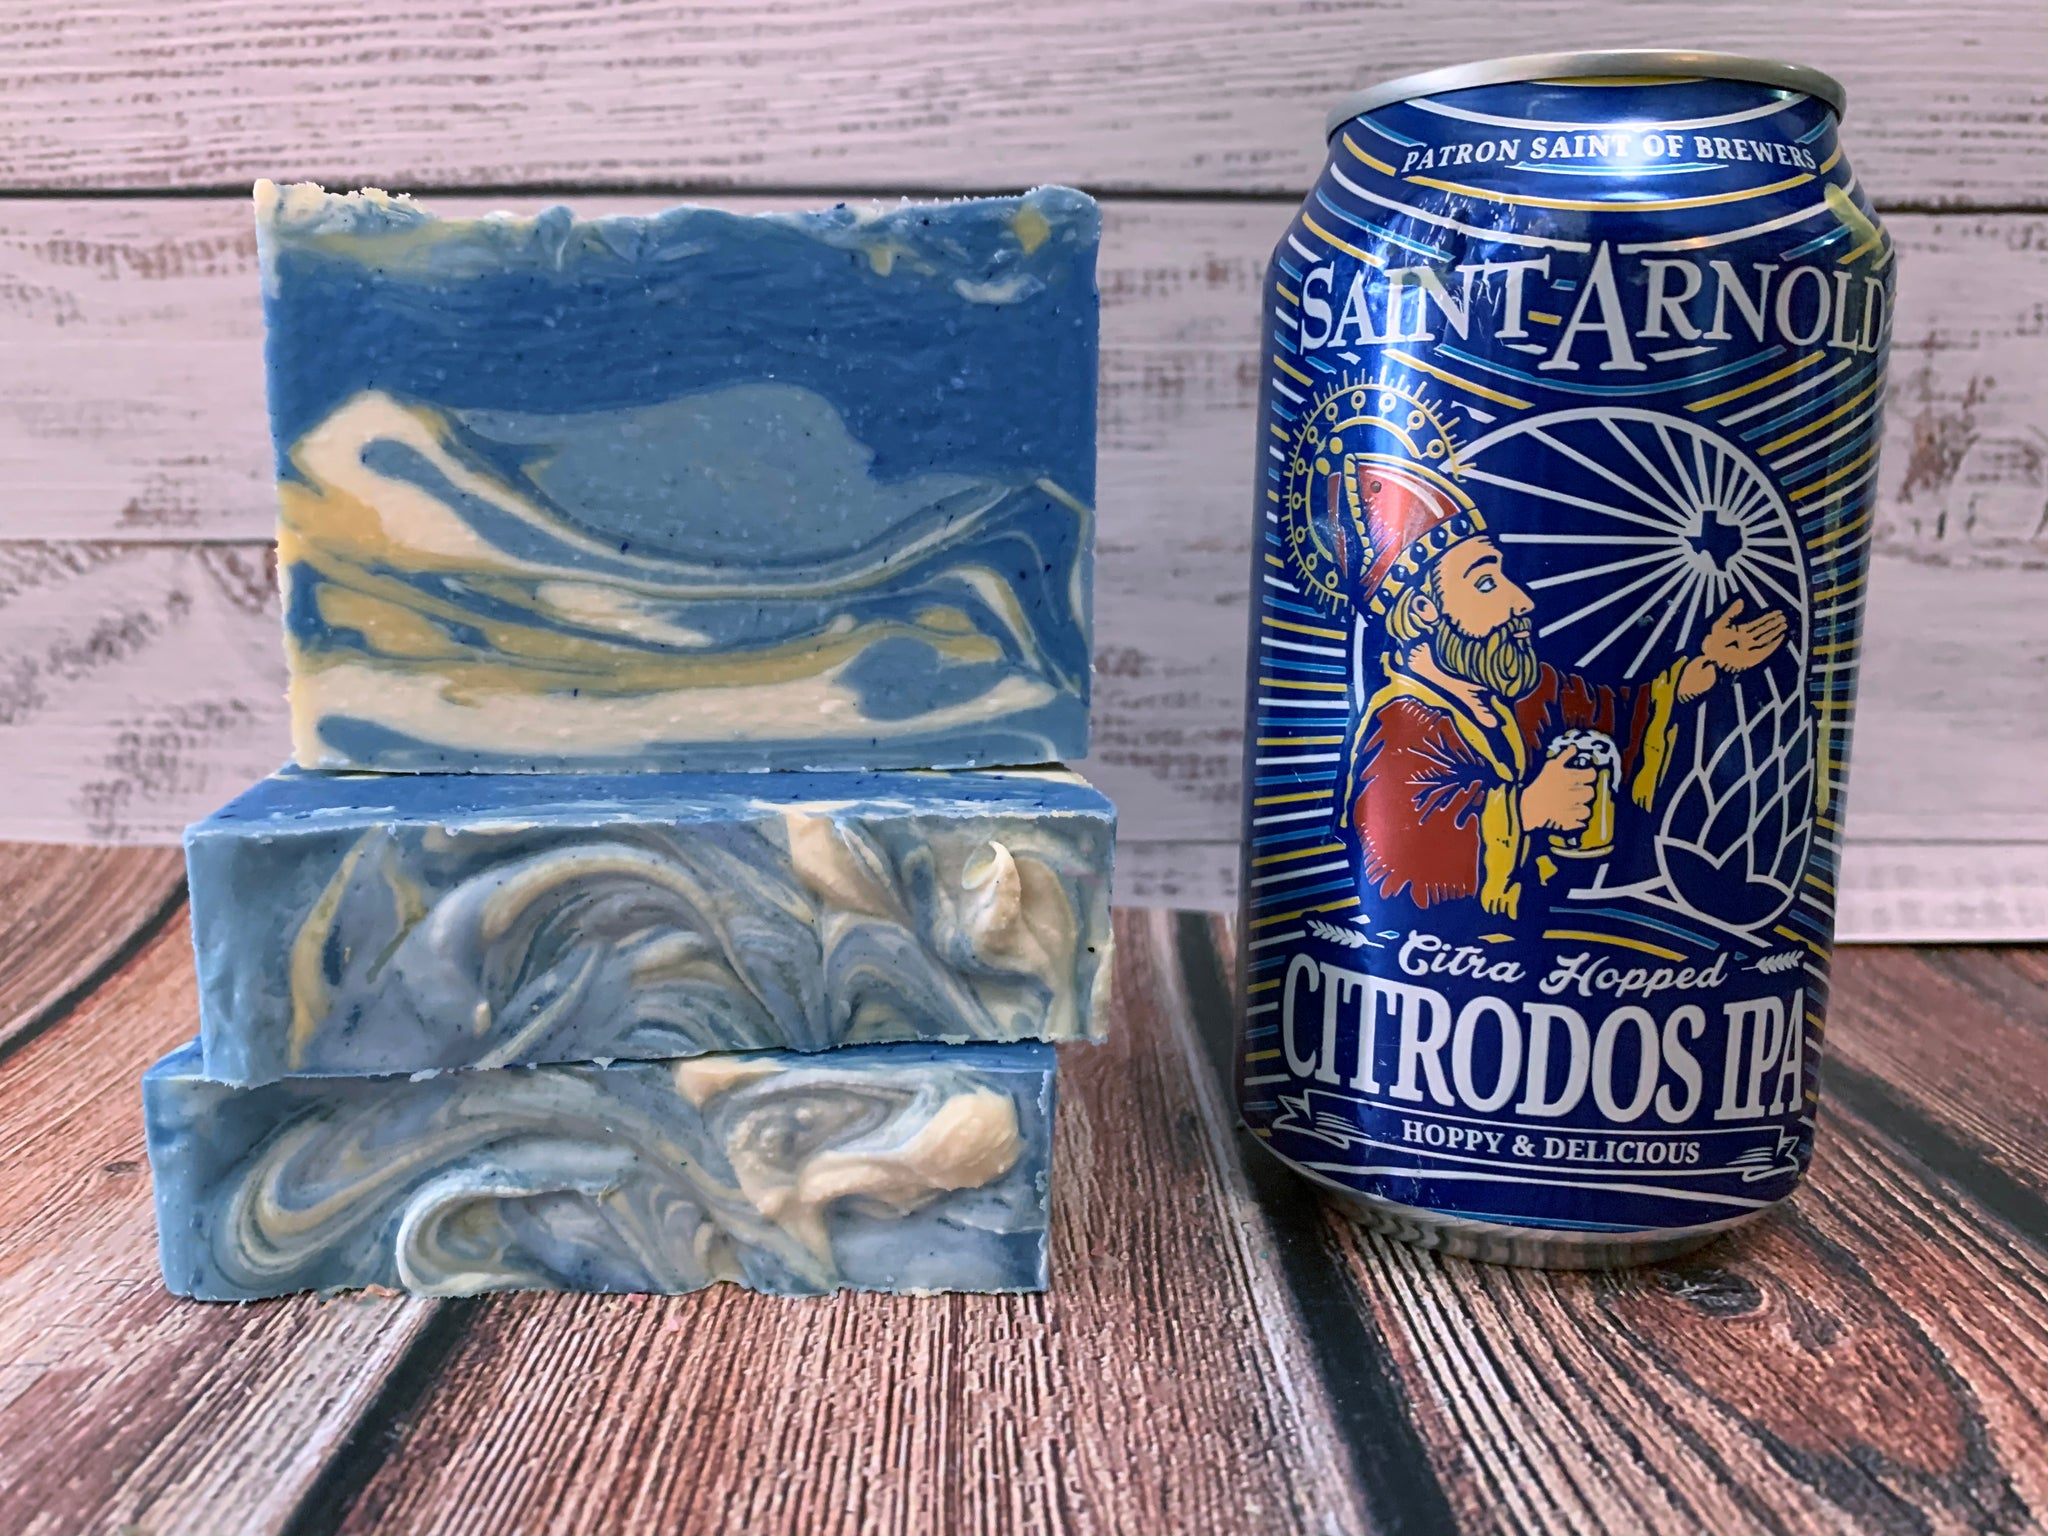 blue white and tan craft beer soap handmade in texas with Citra hopped Citrodos IPA craft beer from Saint Arnold brewing company houston texas craft brewery beer soap for him spunkndisorderly craft beer soaps